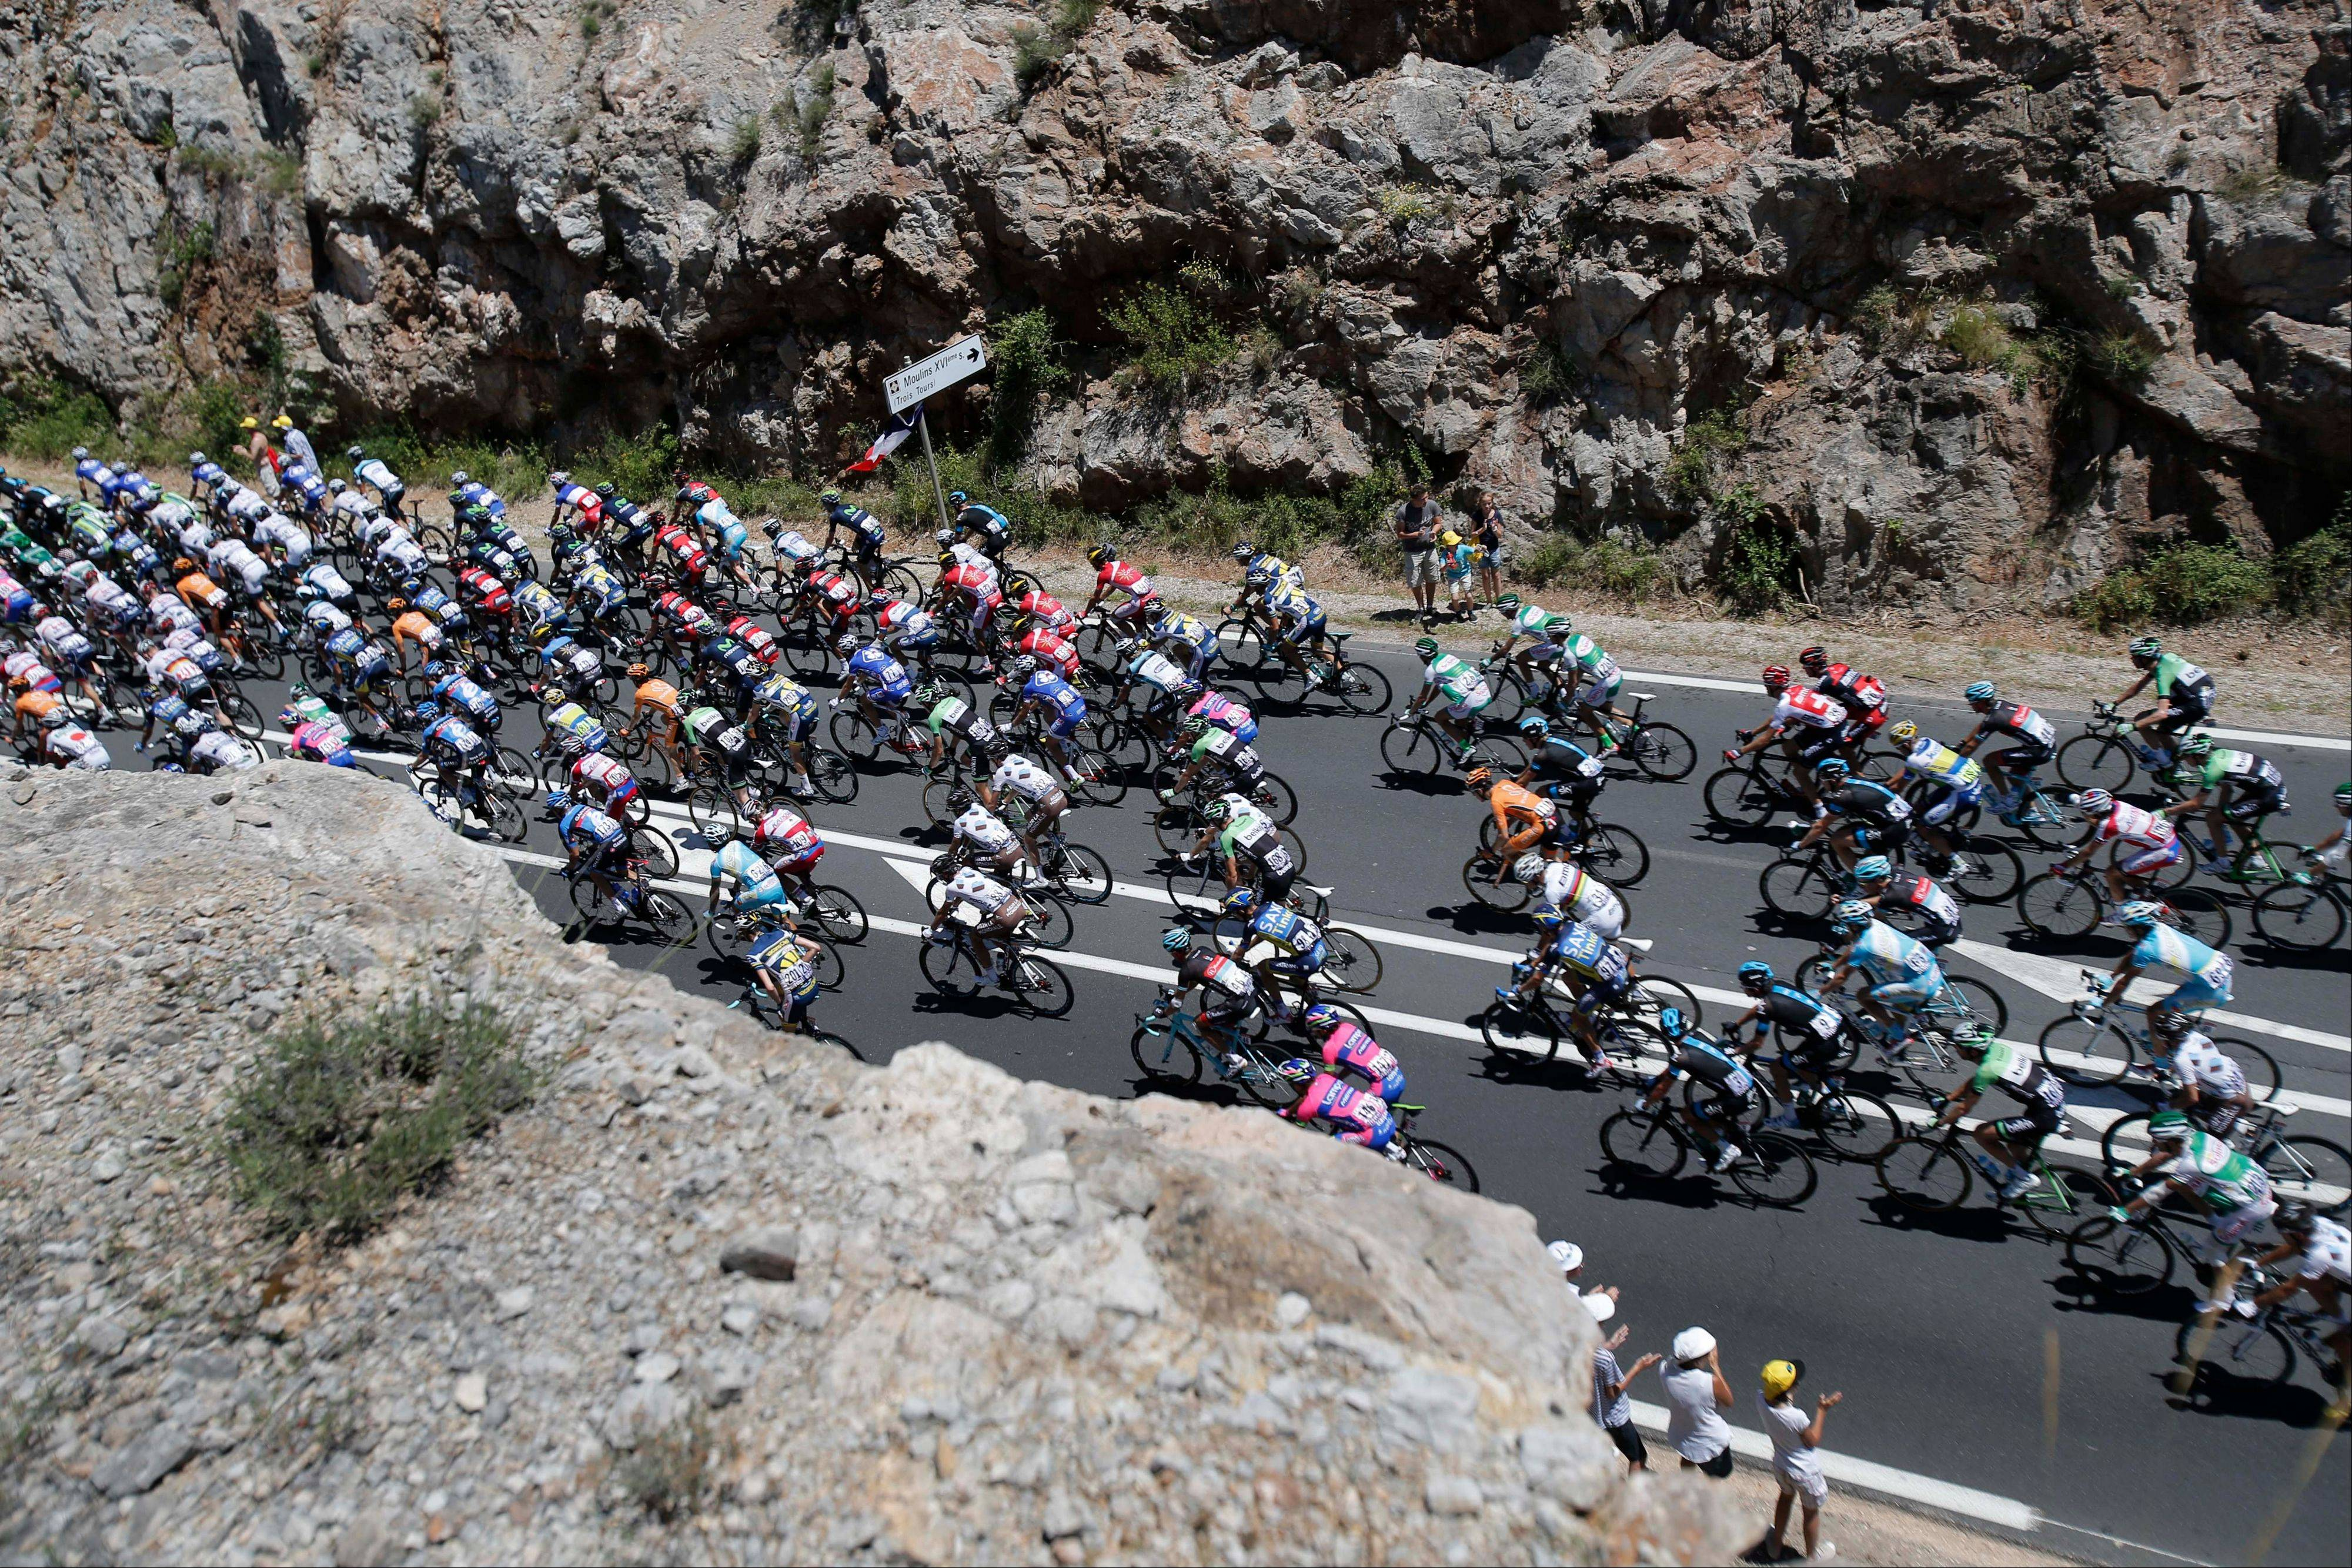 The pack passes during the seventh stage of the Tour de France cycling race over 205.5 kilometers (128.5 miles) with start in Montpellier and finish in Albi, southern France, Friday July 5, 2013. (AP Photo/Christophe Ena)